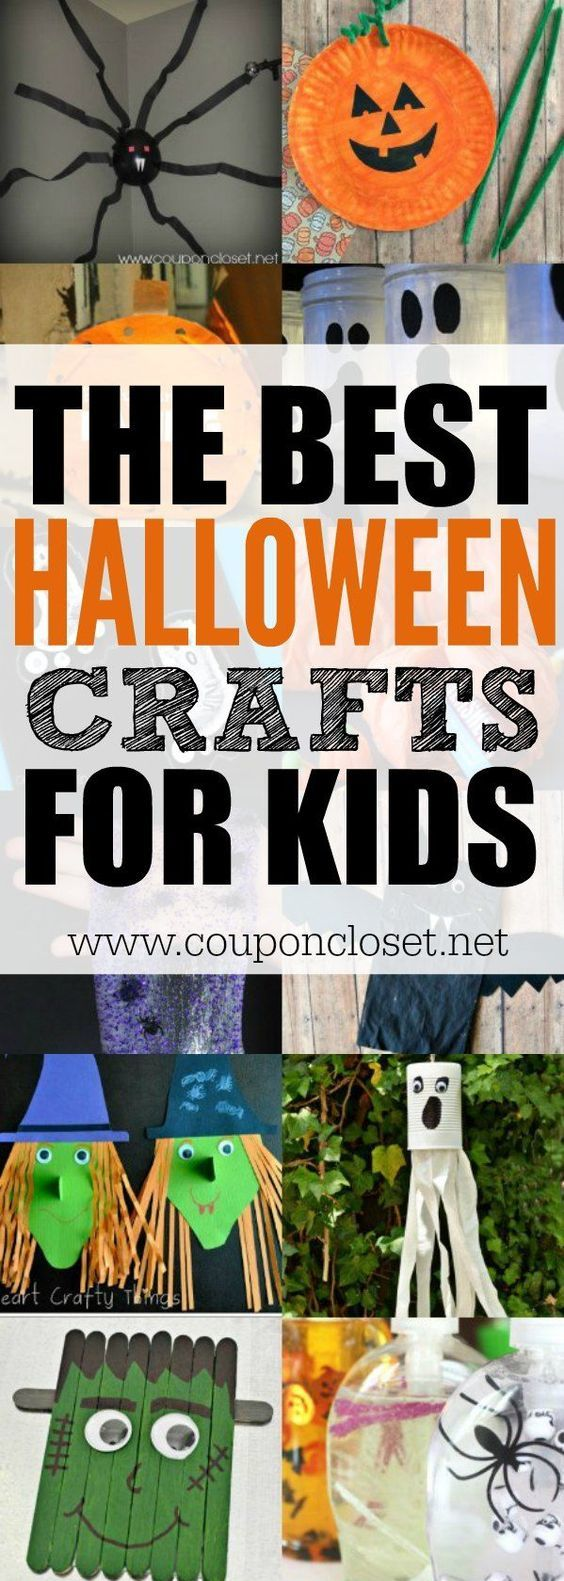 Try some of these easy halloween crafts for kids. Frugal halloween crafts for kids are fun for all ages. Our favorite halloween activities for children.